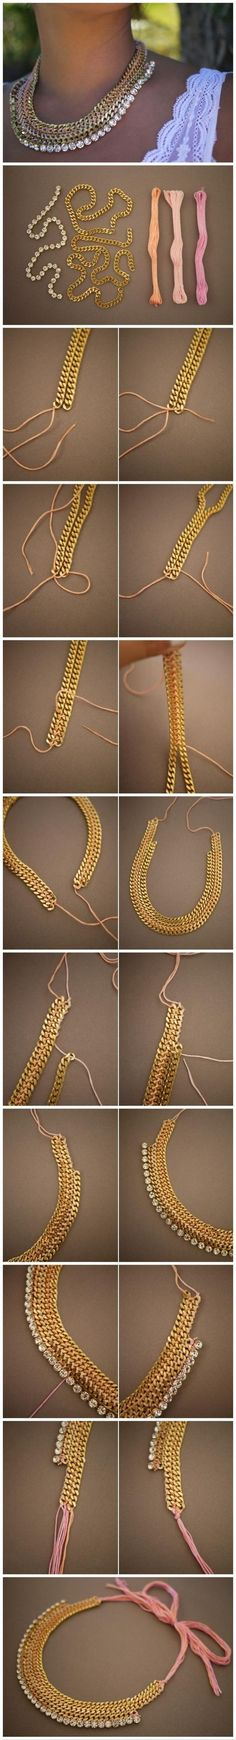 DIY Necklace - Tutorial ,